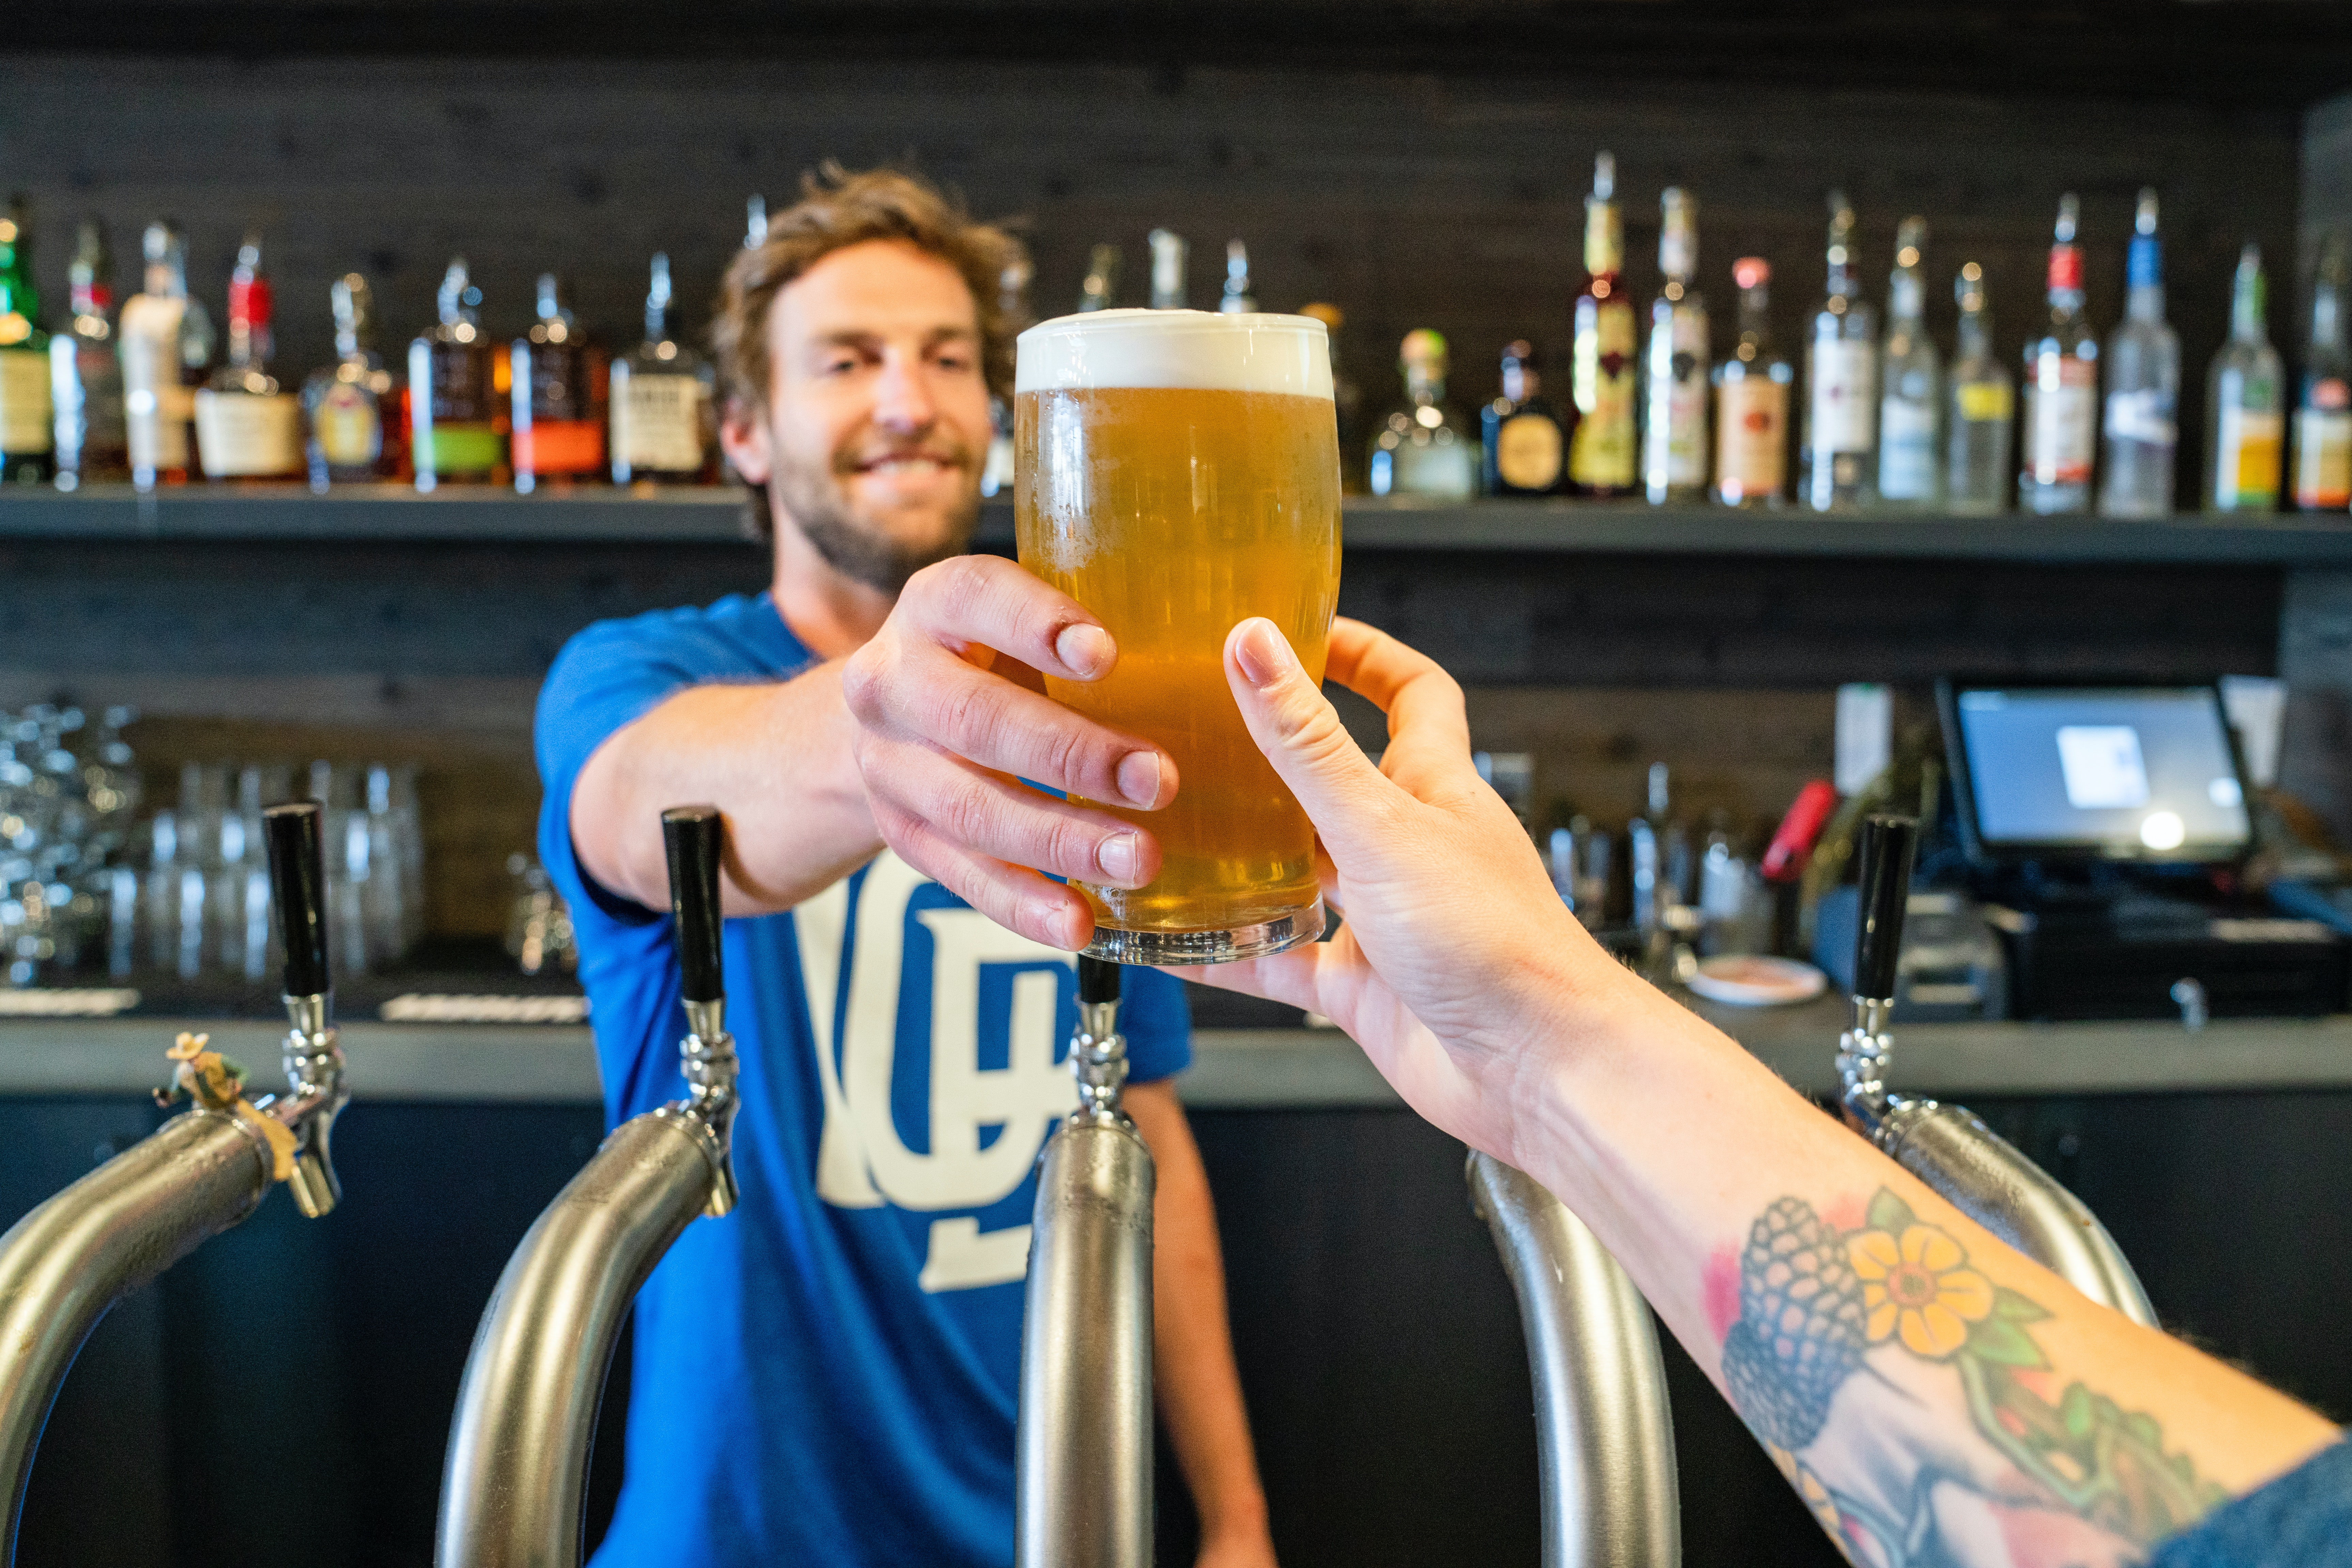 man-handing-a-person-a-glass-of-beer-1267323